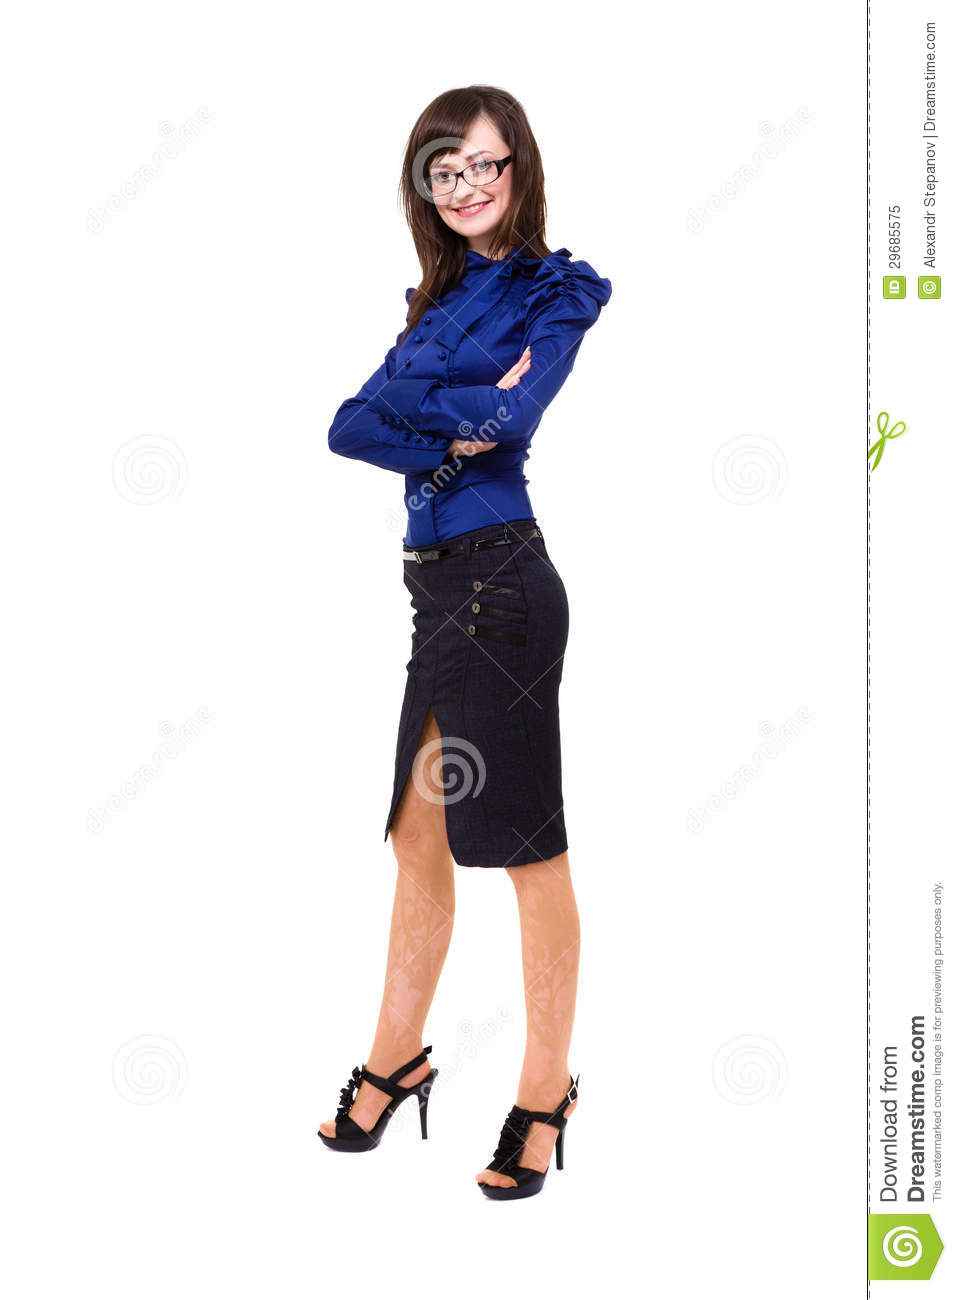 Full length of cheerful business woman in casual clothing standing on